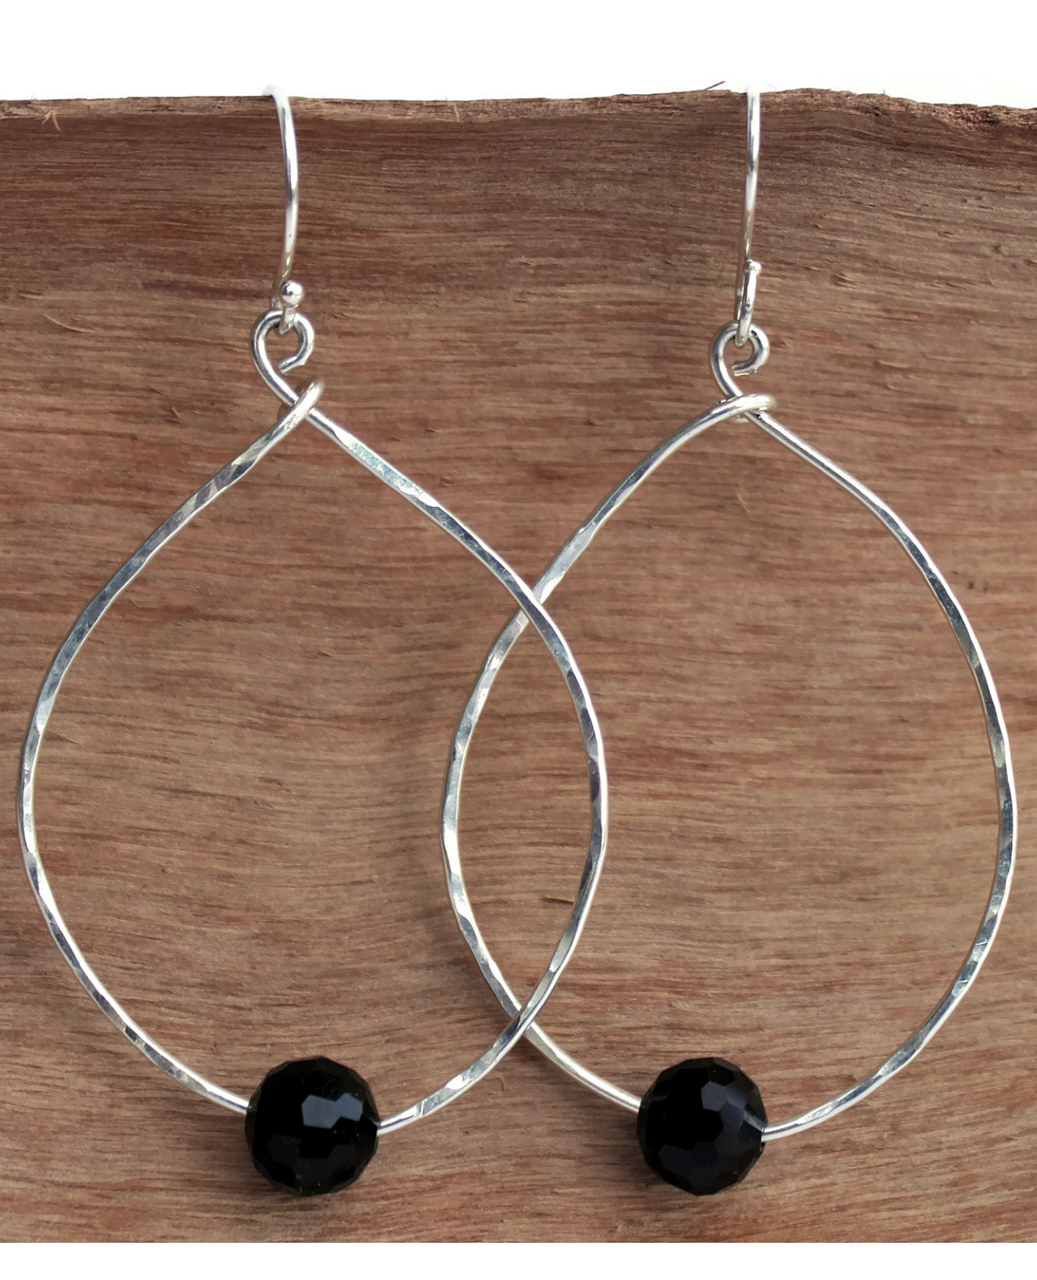 sterling onyx hoops on wood